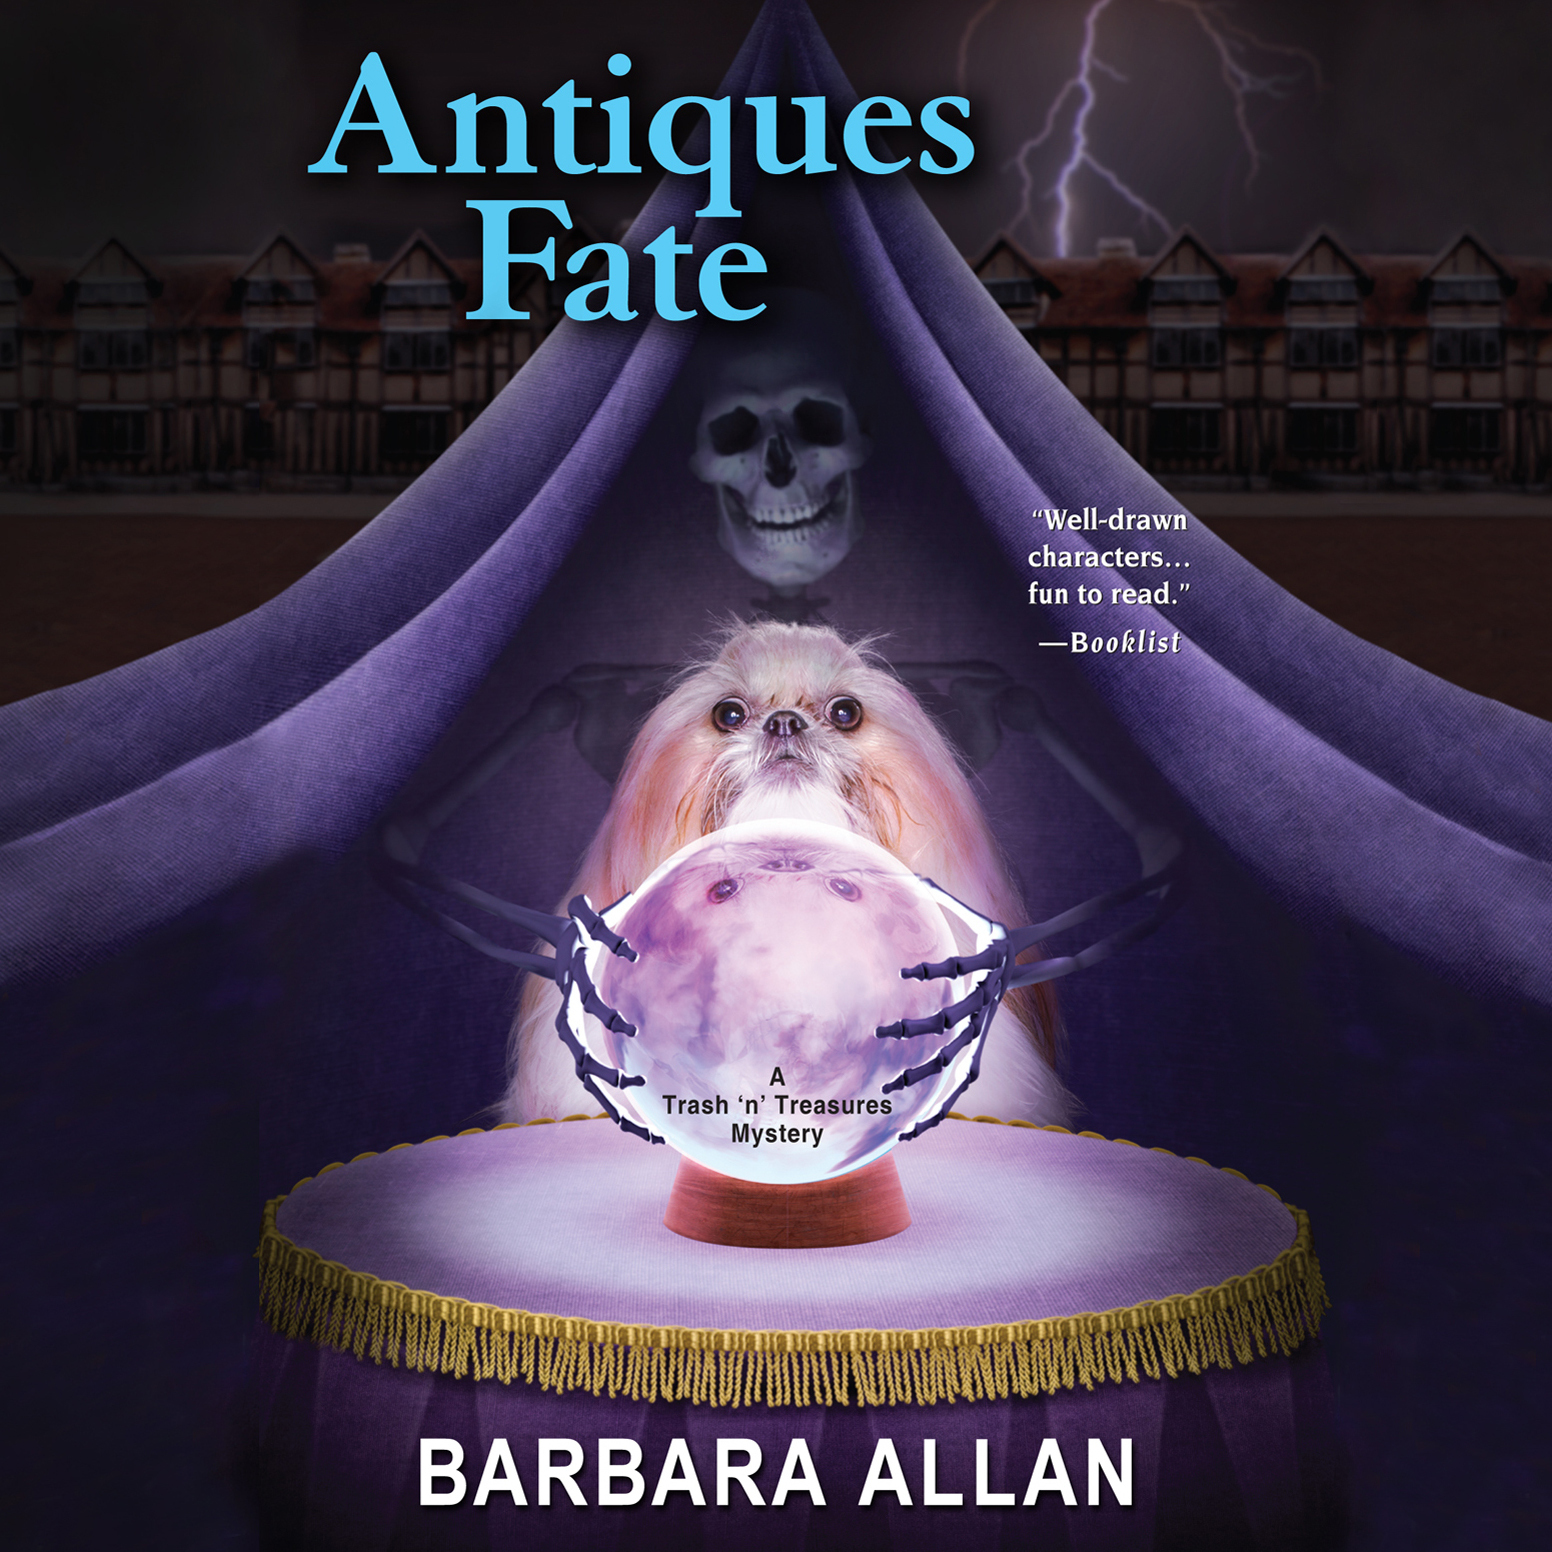 Printable Antiques Fate: A Trash 'n' Treasures Mystery Book Audiobook Cover Art